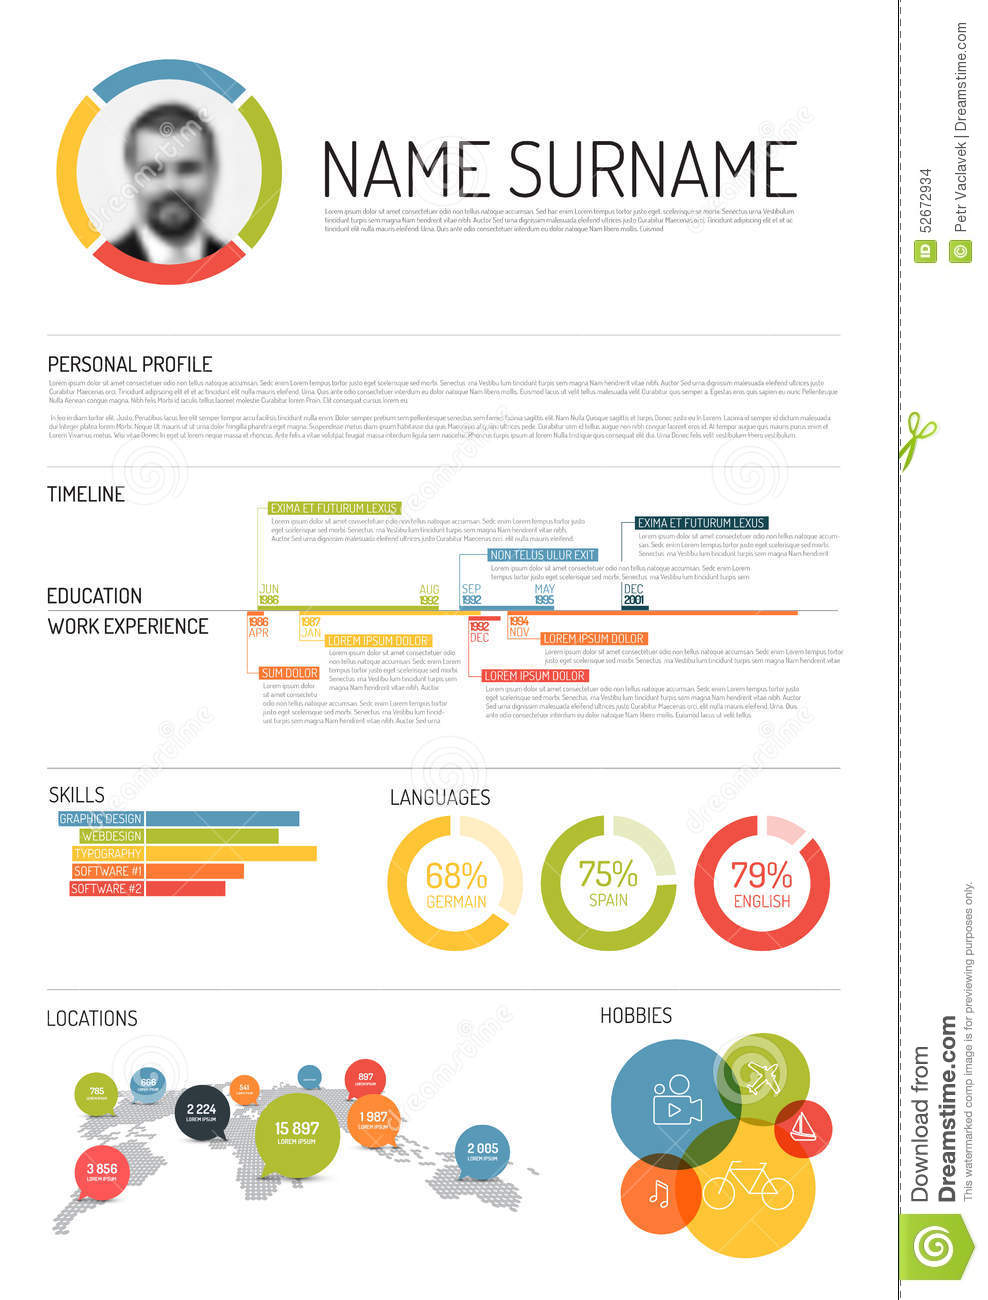 online attractive resume maker best resume and all letter cv online attractive resume maker simple resume easy online resume builder vector original mini st cv resume template